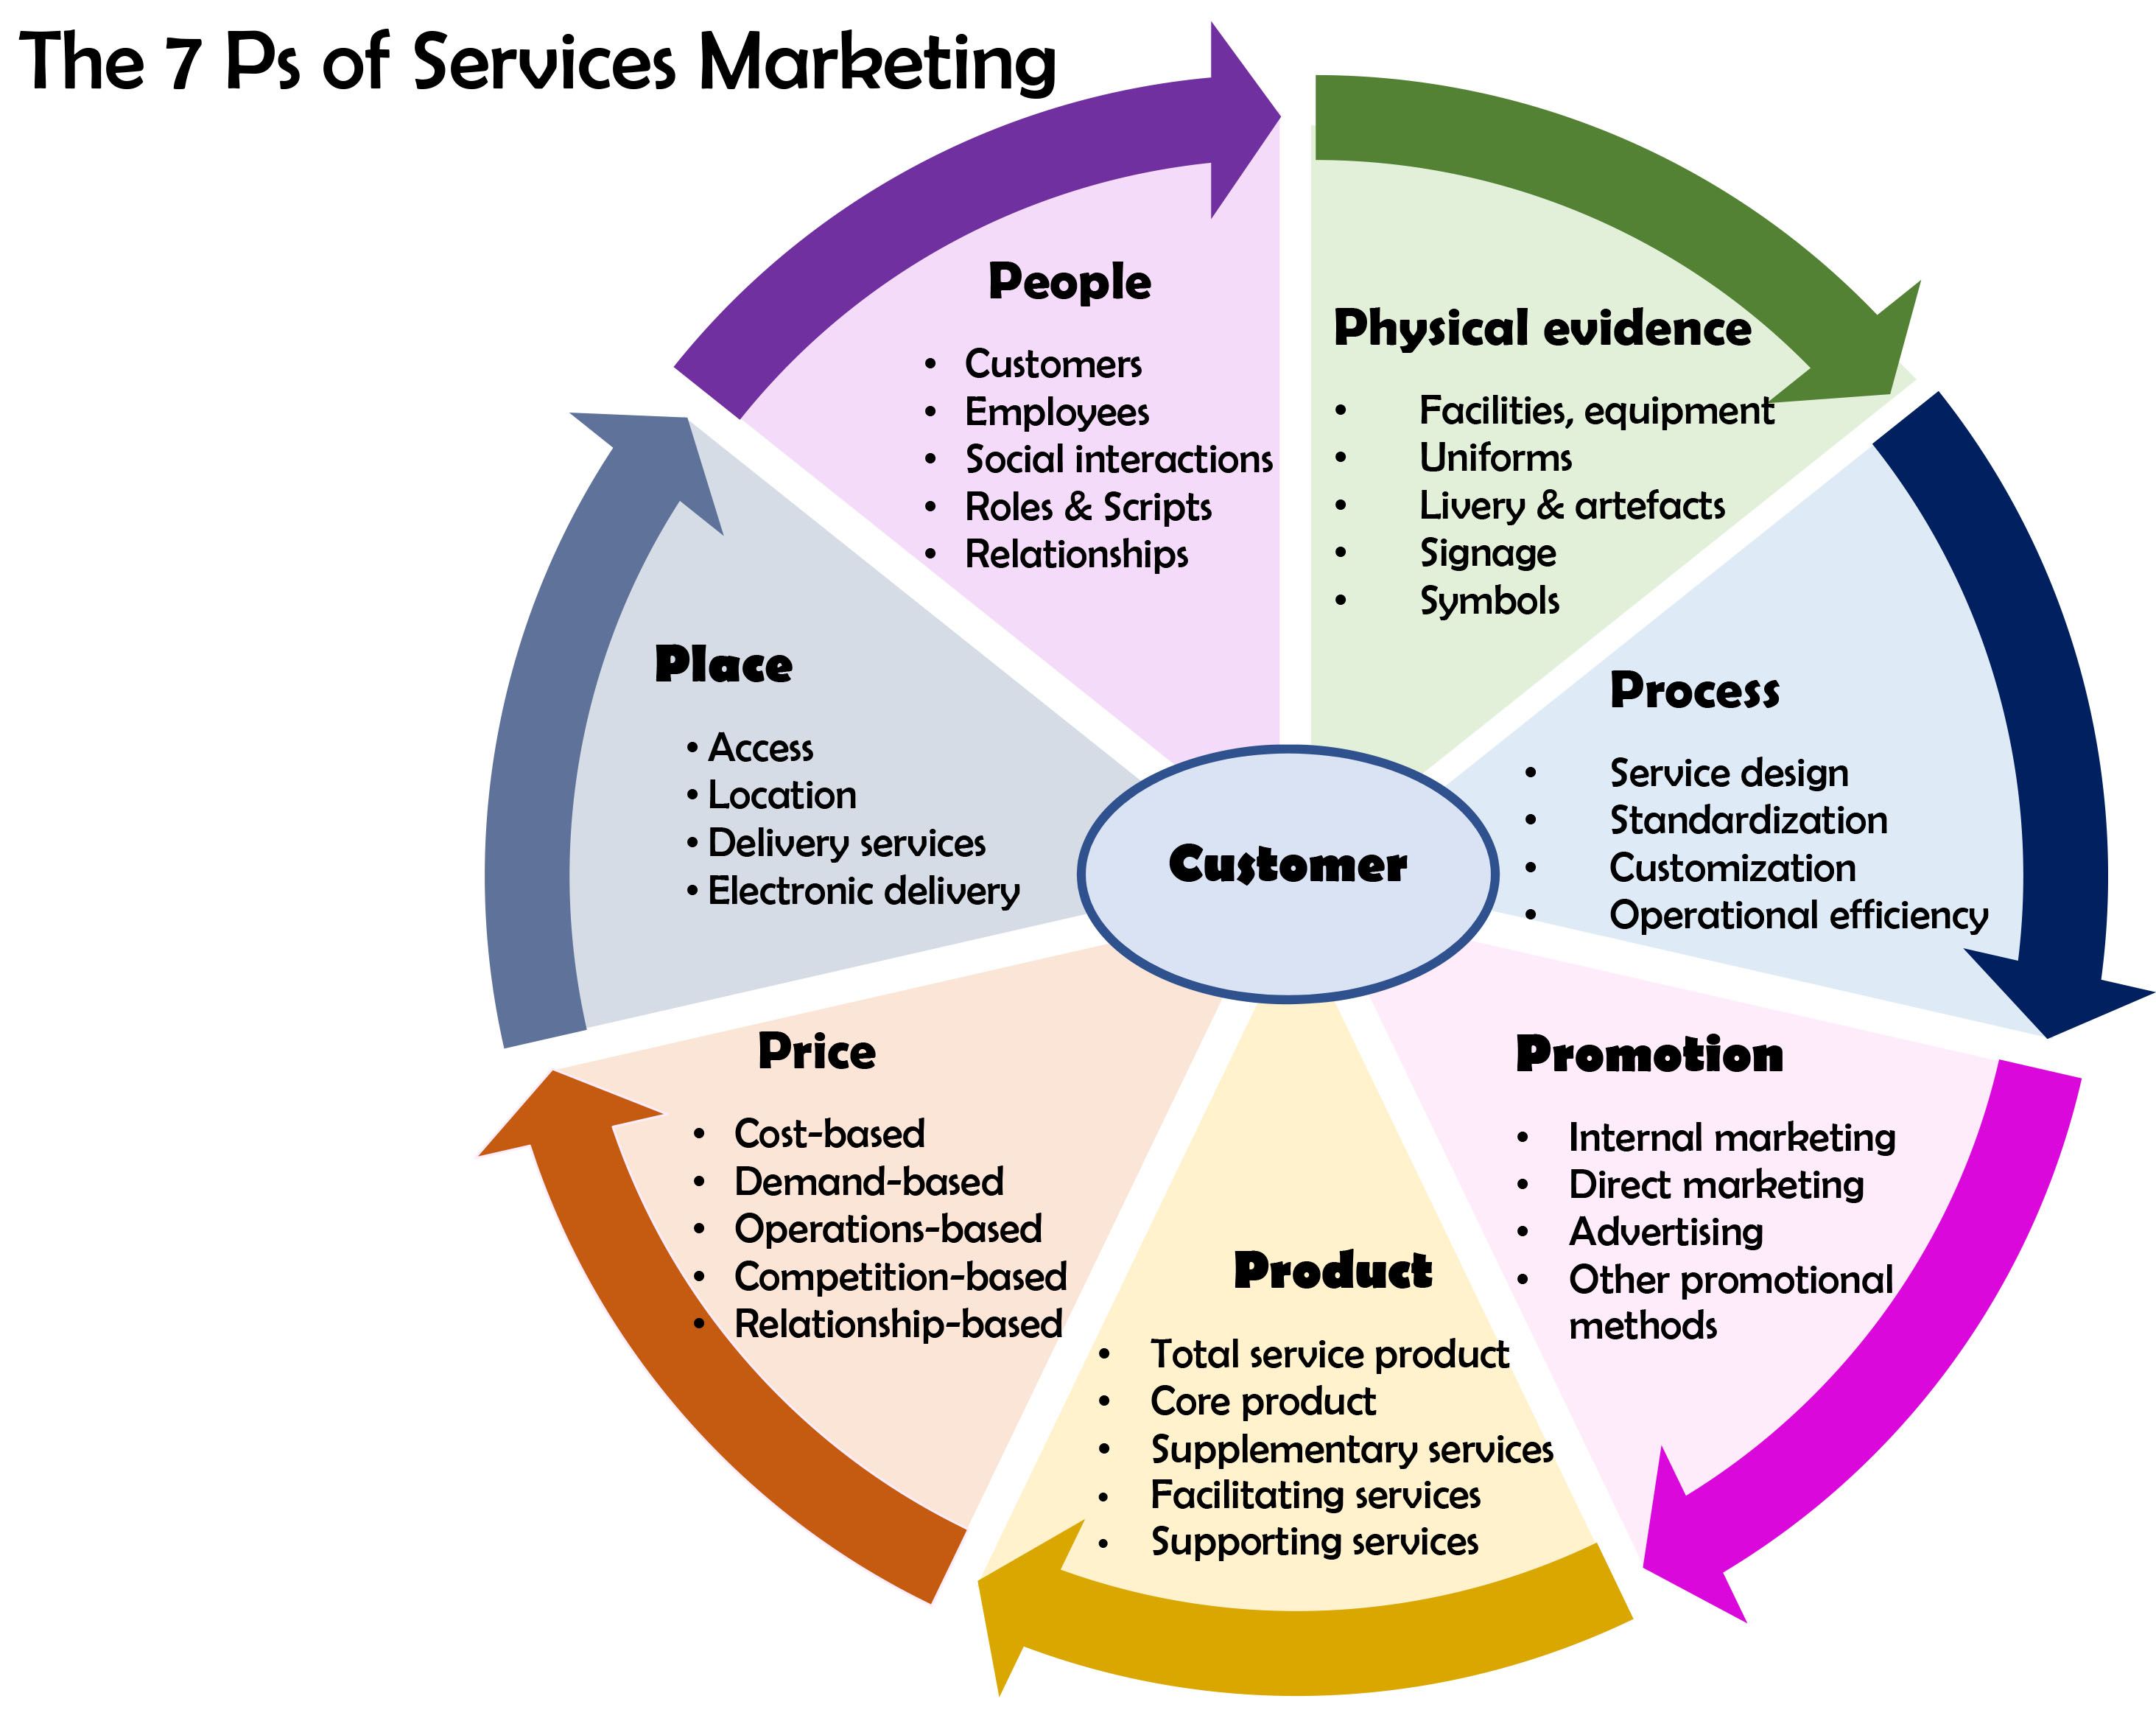 Services marketing wikipedia expanded and modified marketing mixedit malvernweather Images